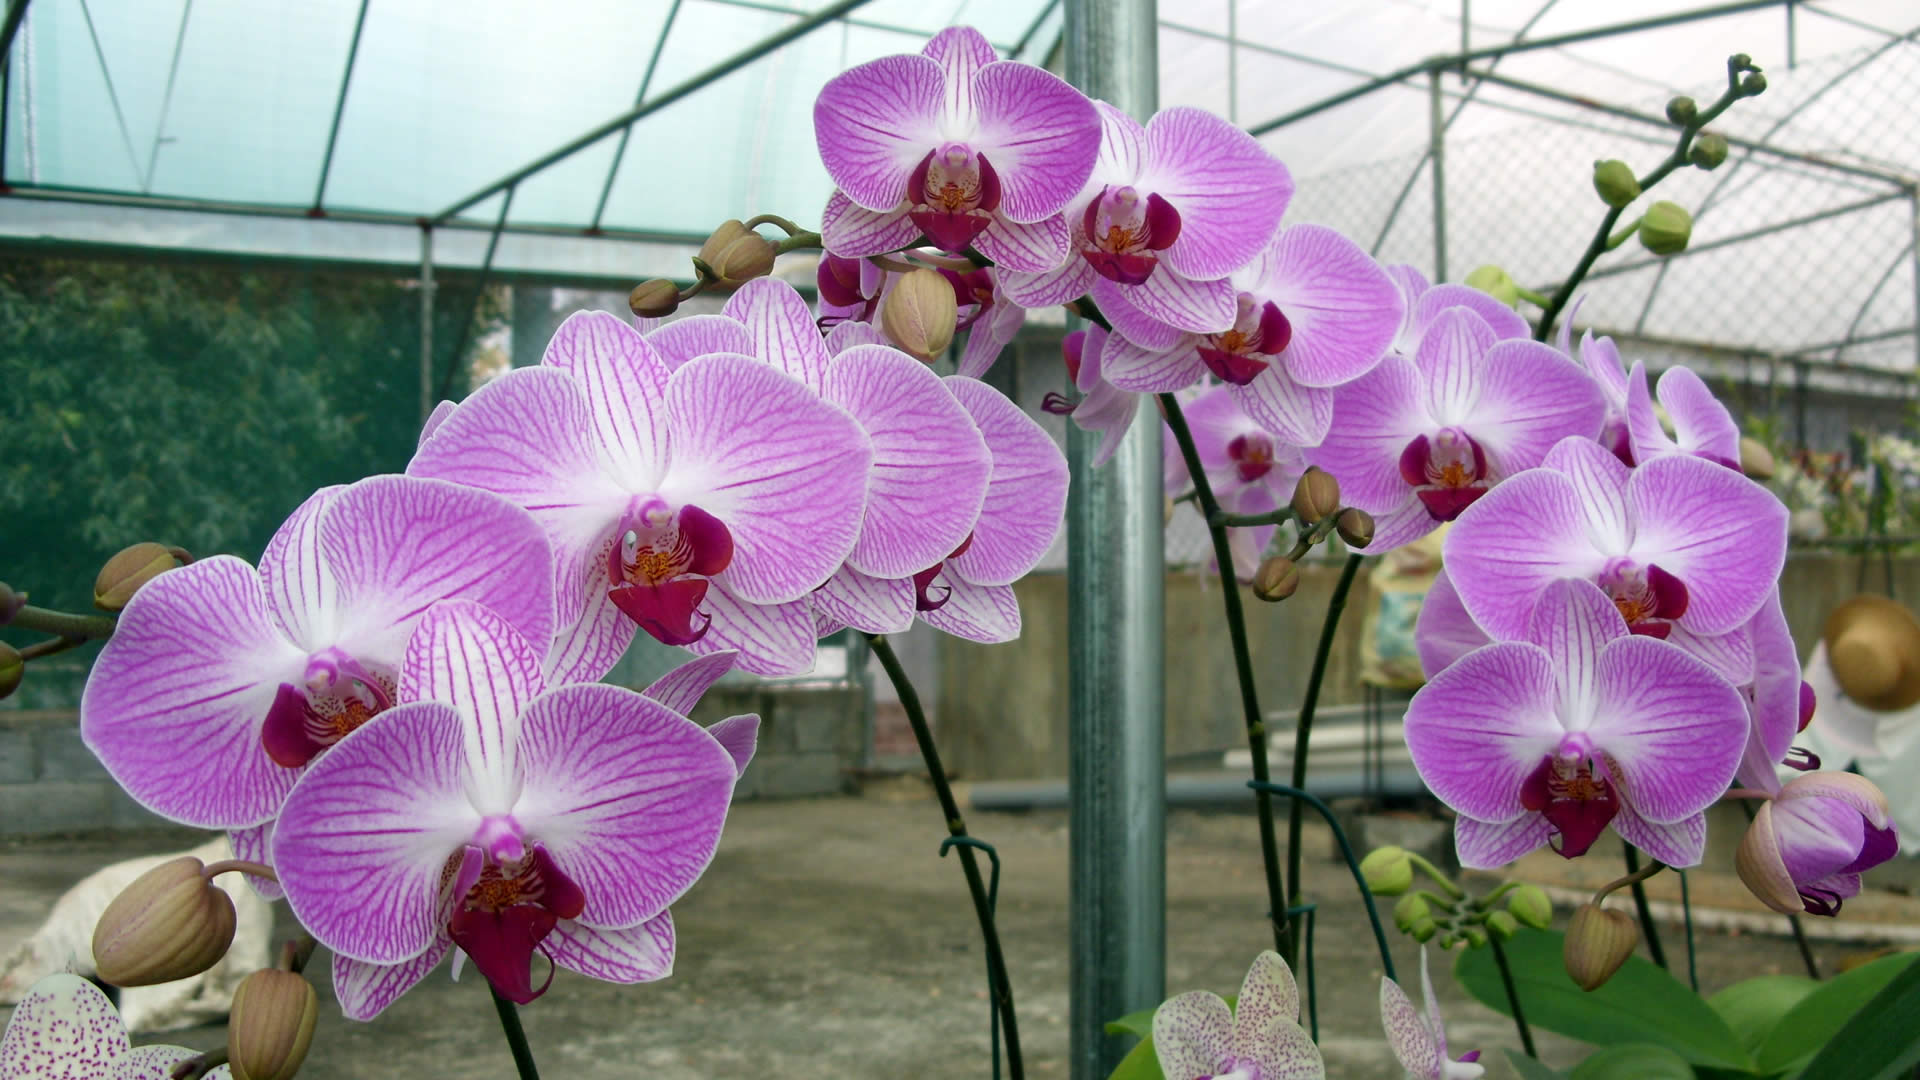 Growth Rate likewise Dendrobium Spectabile 40 moreover Cattleya Trianaei Semi Alba Flamea Kathleen Cceaos 2945 furthermore Vanda Roberts Delight Red Berry 3189 additionally Nobiletypedendrobiumcare. on growing orchids home